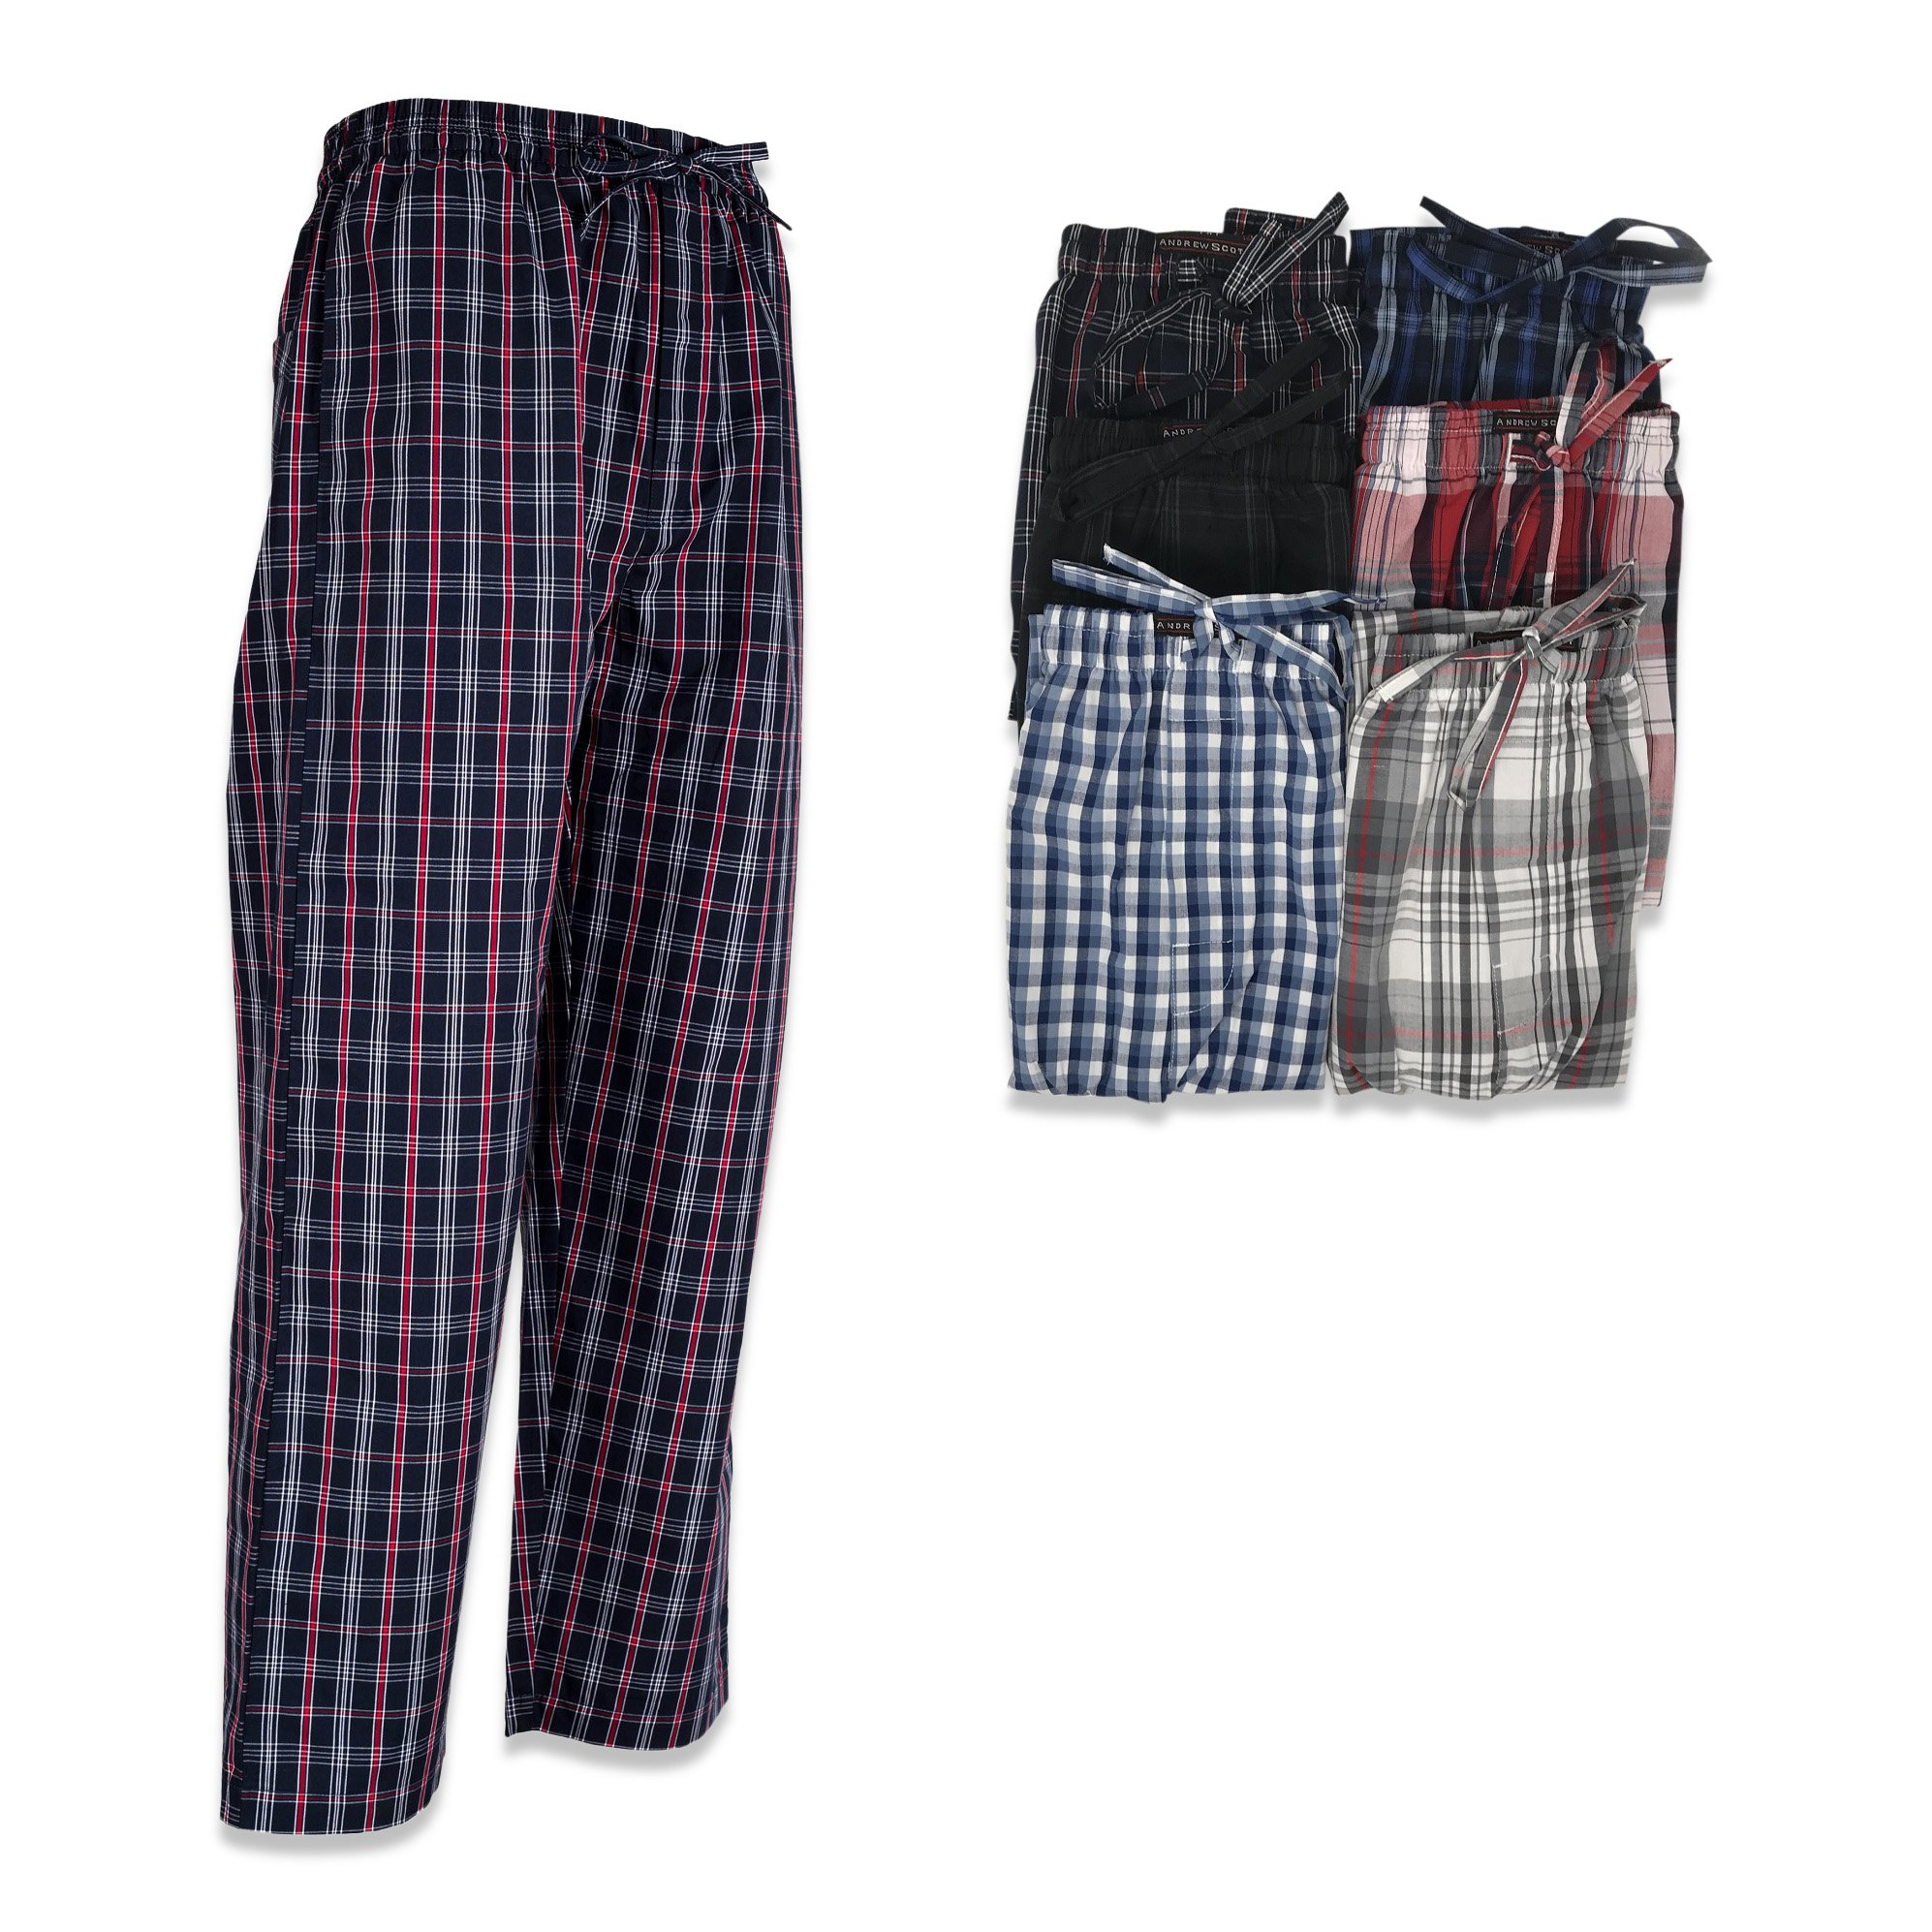 Andrew Scott Boys 6 Pack Woven Pant (XL 18-20, 6 Pack - Assorted Classic Plaids) by Andrew Scott (Image #1)